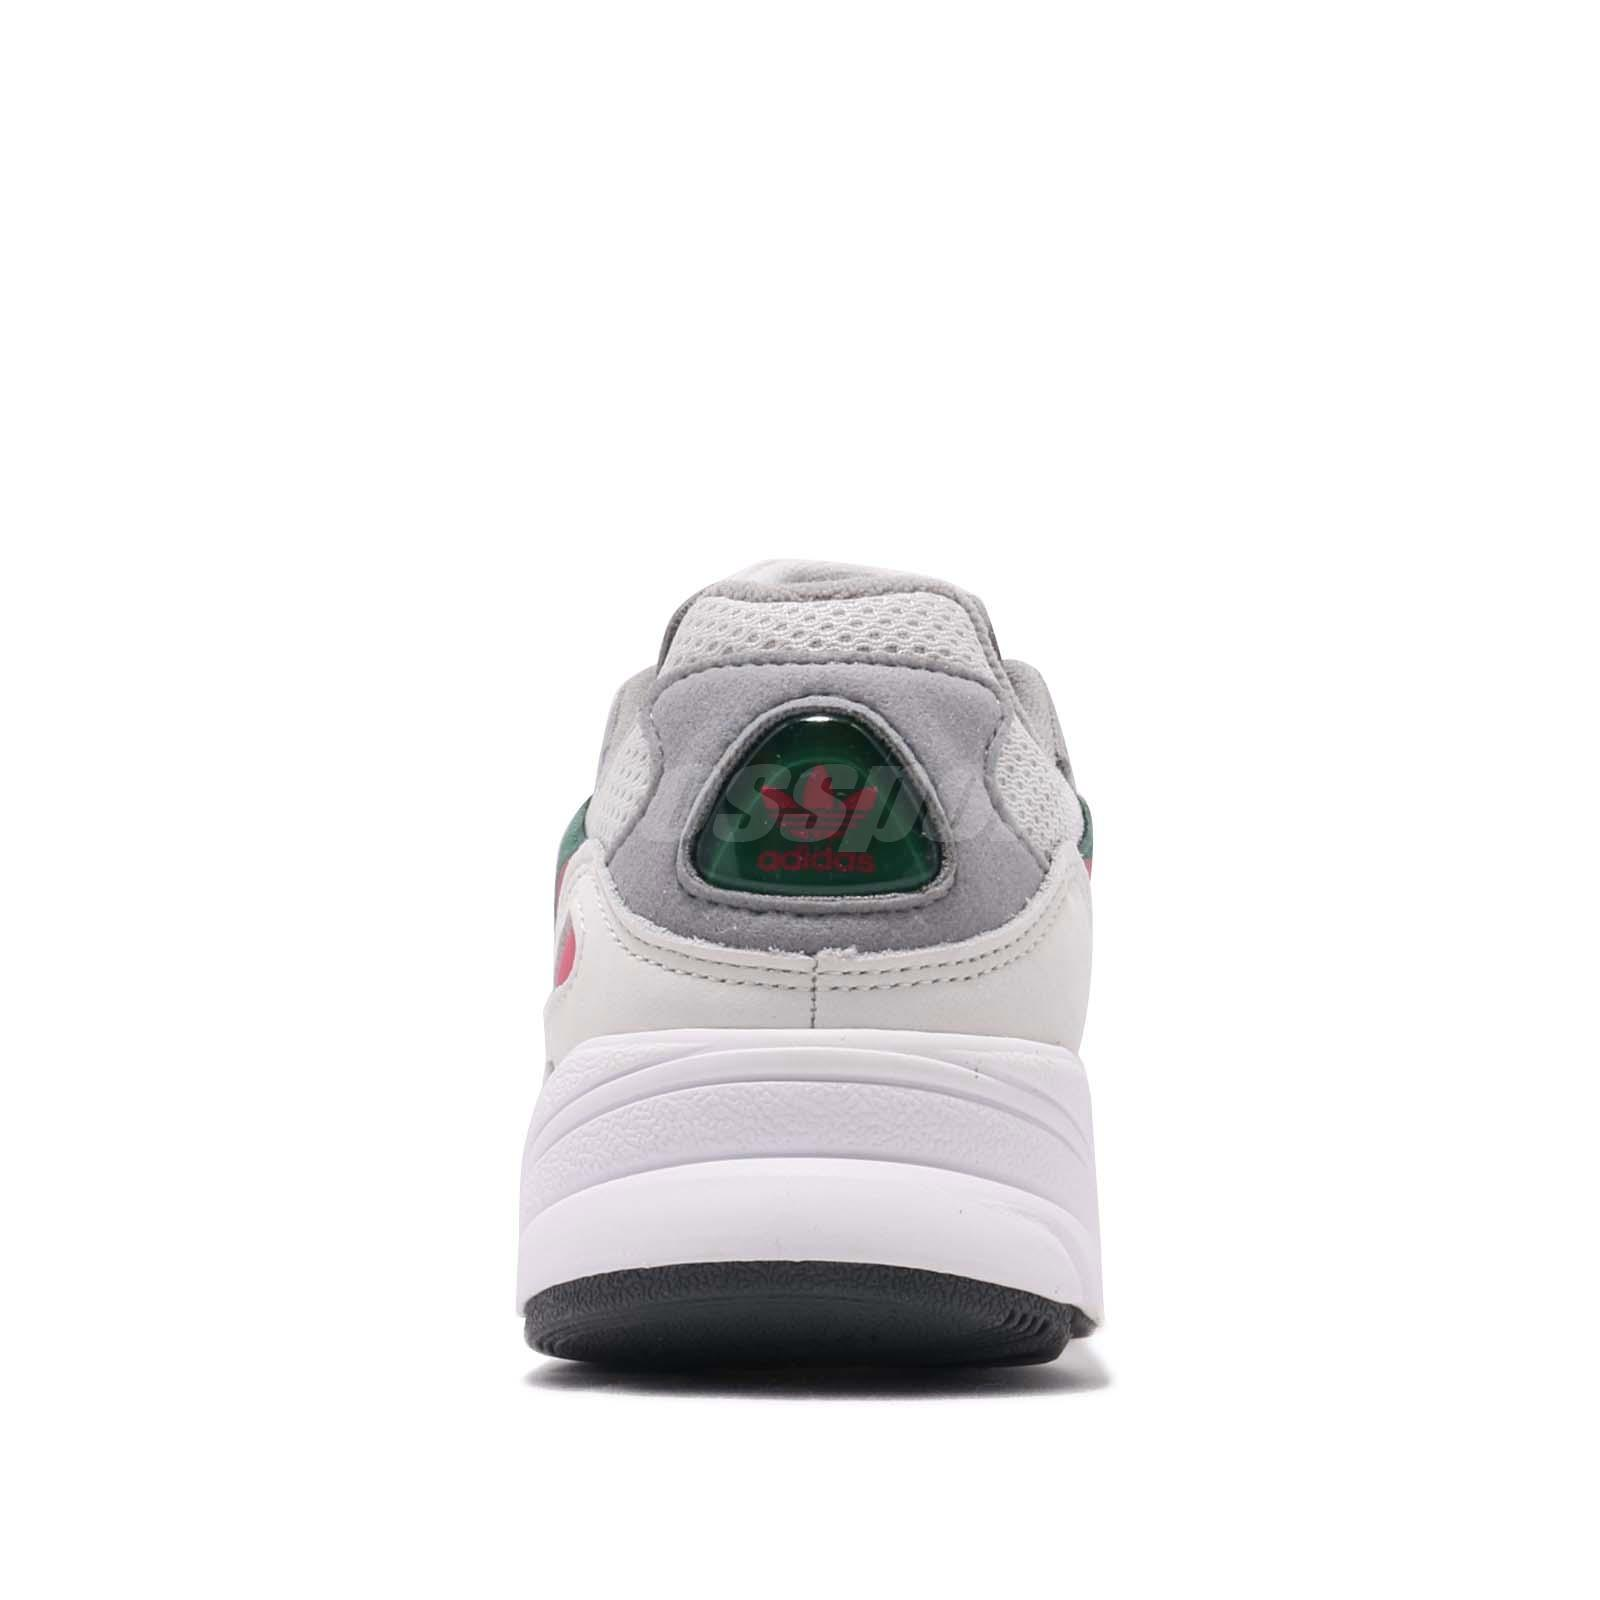 Details about adidas Originals Yung 96 Grey White Active Pink Men Running Shoes Sneaker DB2608